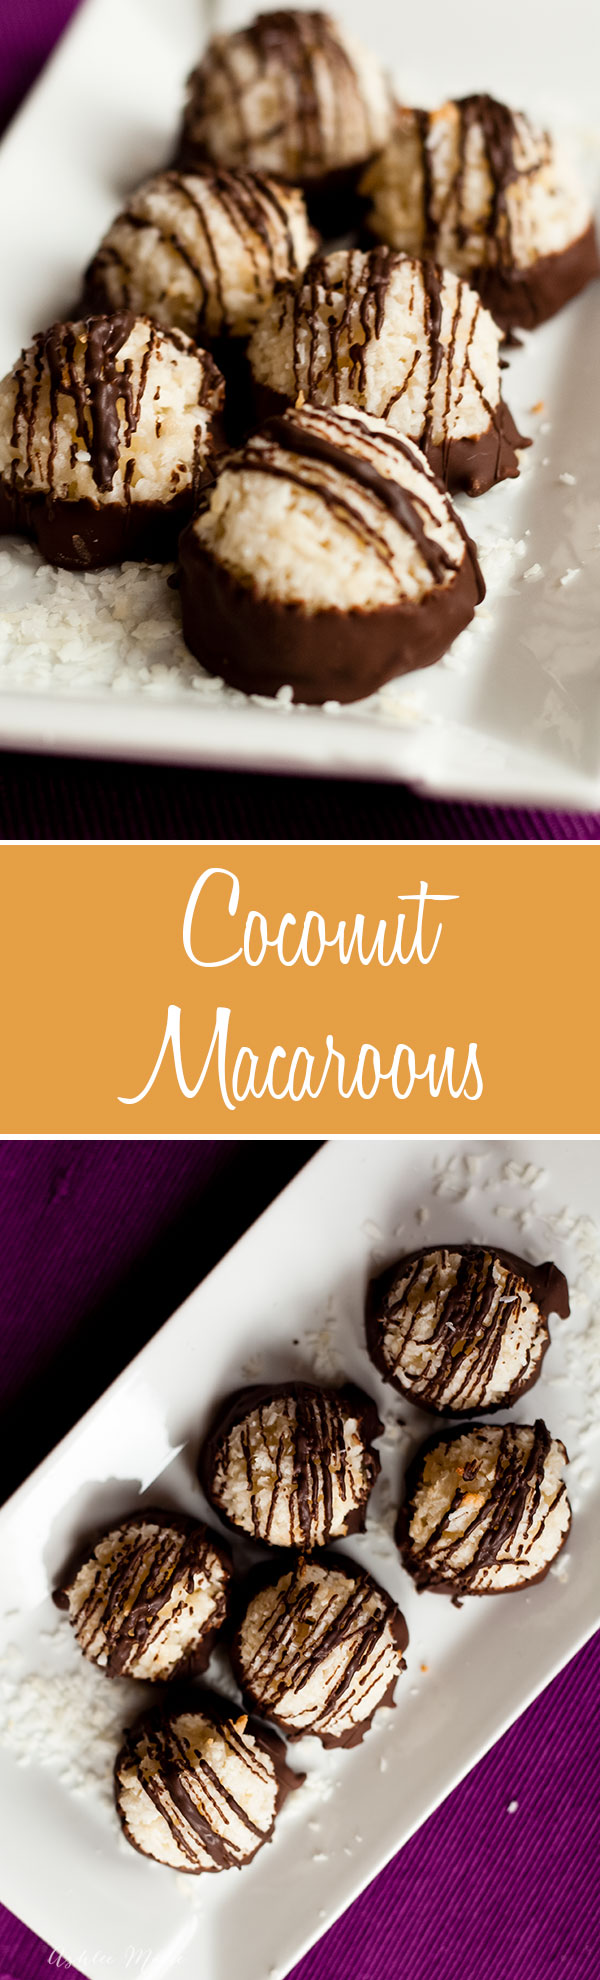 These are my mom's favorite so I make them for her all the time, great creamy coconut flavor and dipped in chocolate, doesnt get much better